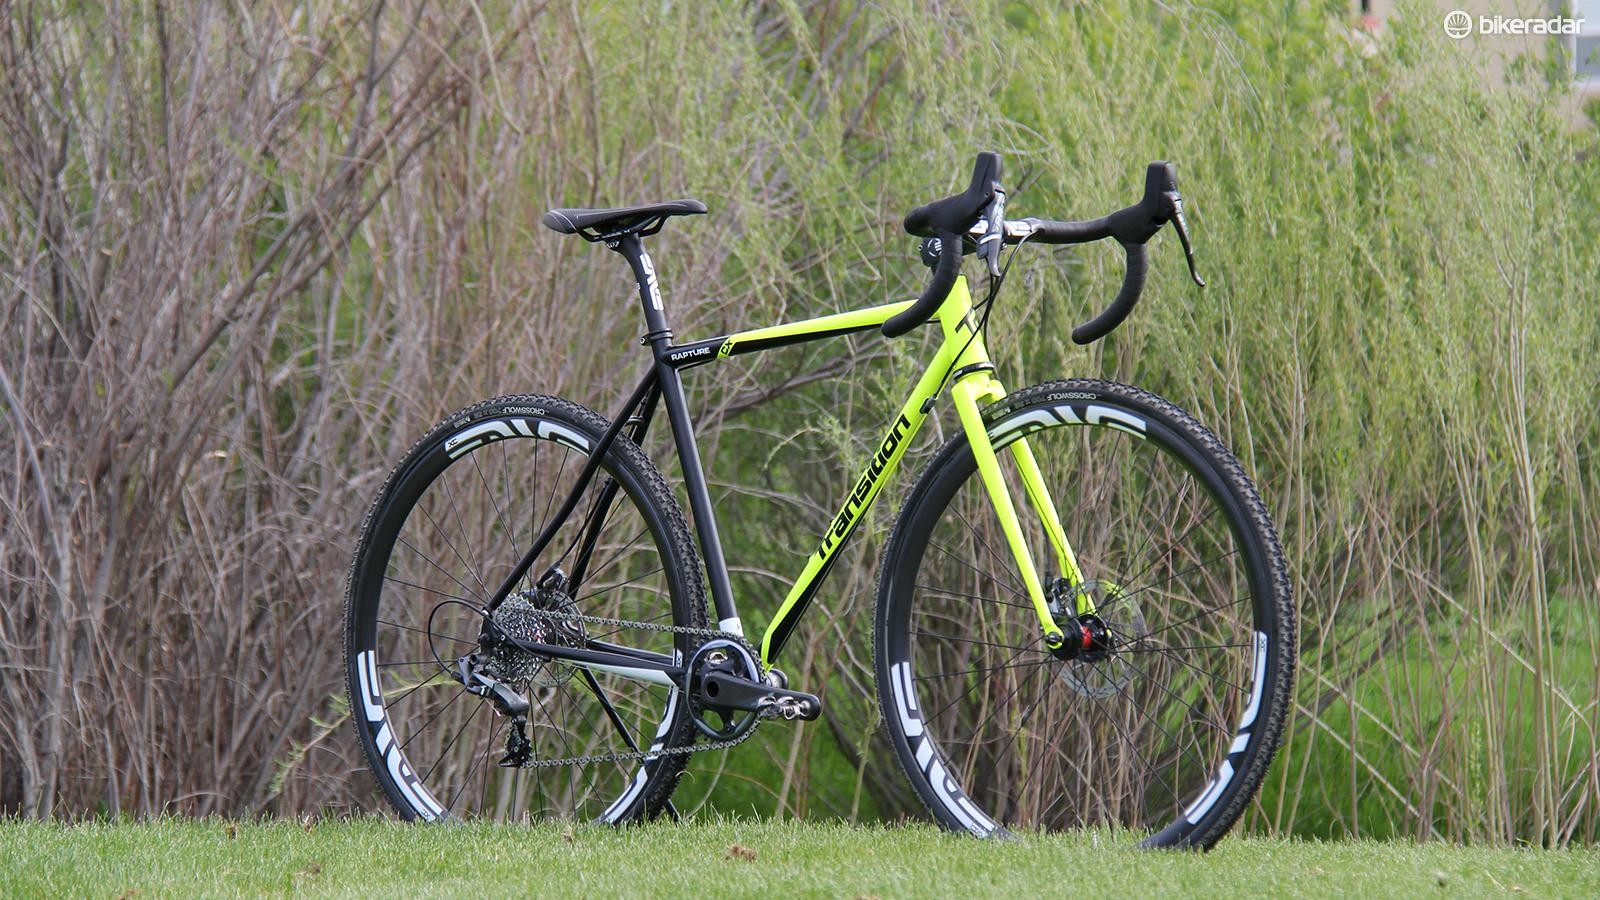 The Transition Rapture is a versatile cyclocross bike that won't break the bank